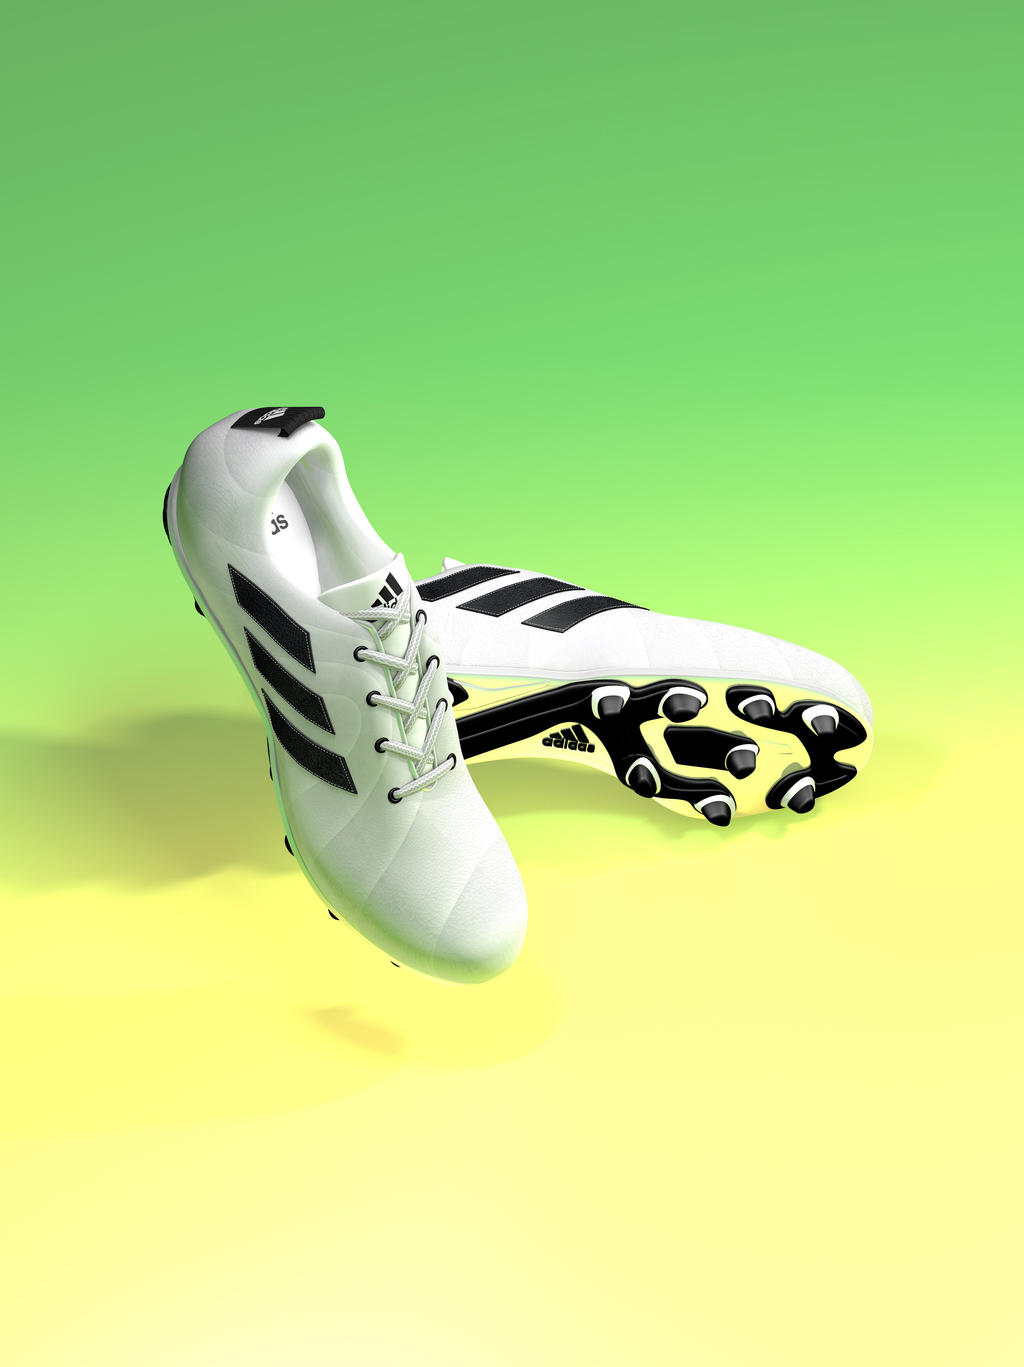 Adidas Shoes Contact Information